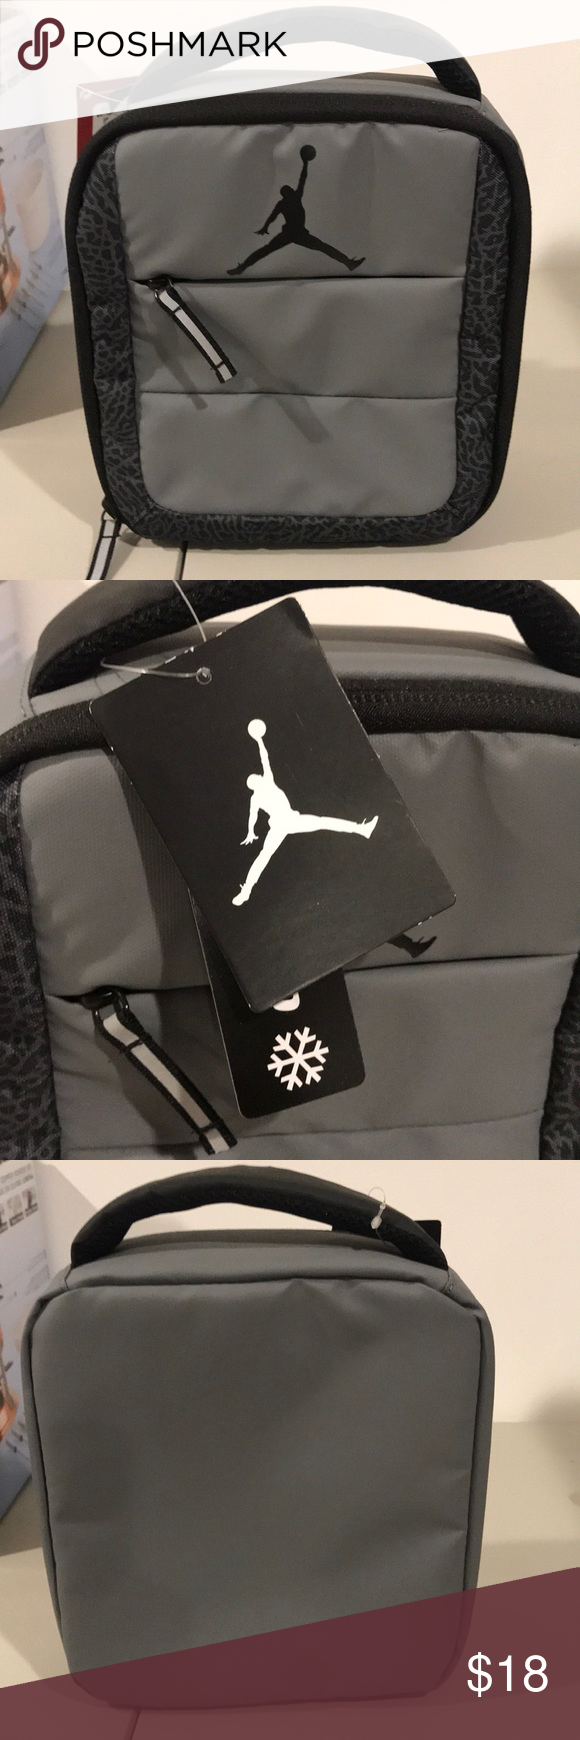 416f2d8ee8a686 Air Jordan insulated soft lunch box bag. Exactly as pictured. Please check  pictures and ask any questions Jordan Accessories Bags